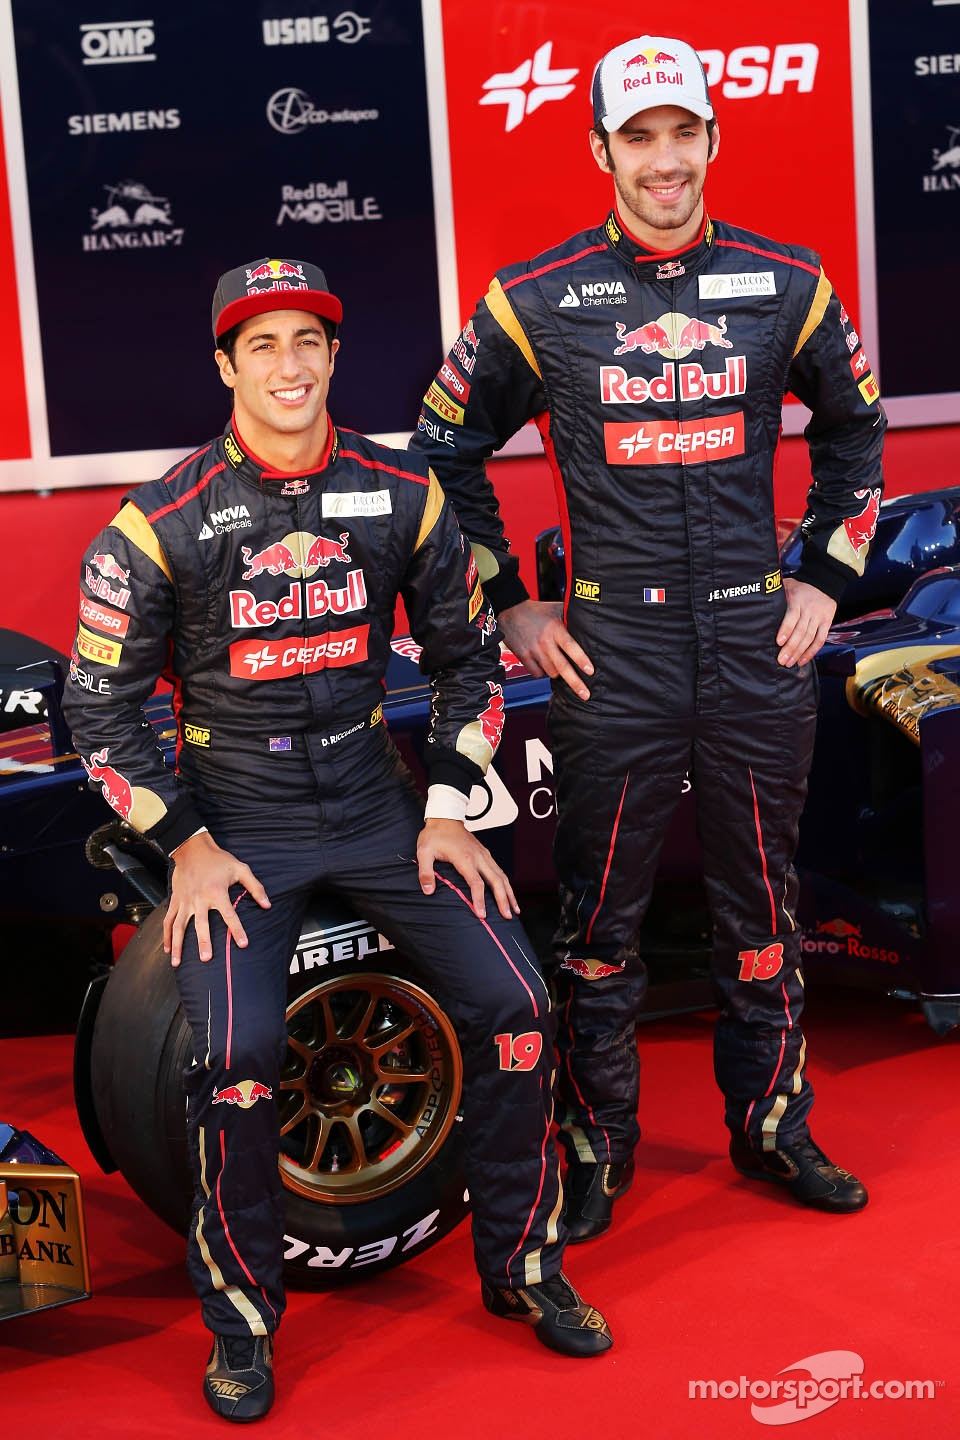 Jean-Eric Vergne, Scuderia Toro Rosso and team mate Daniel Ricciardo, Scuderia Toro Rosso with the new Scuderia Toro Rosso STR8